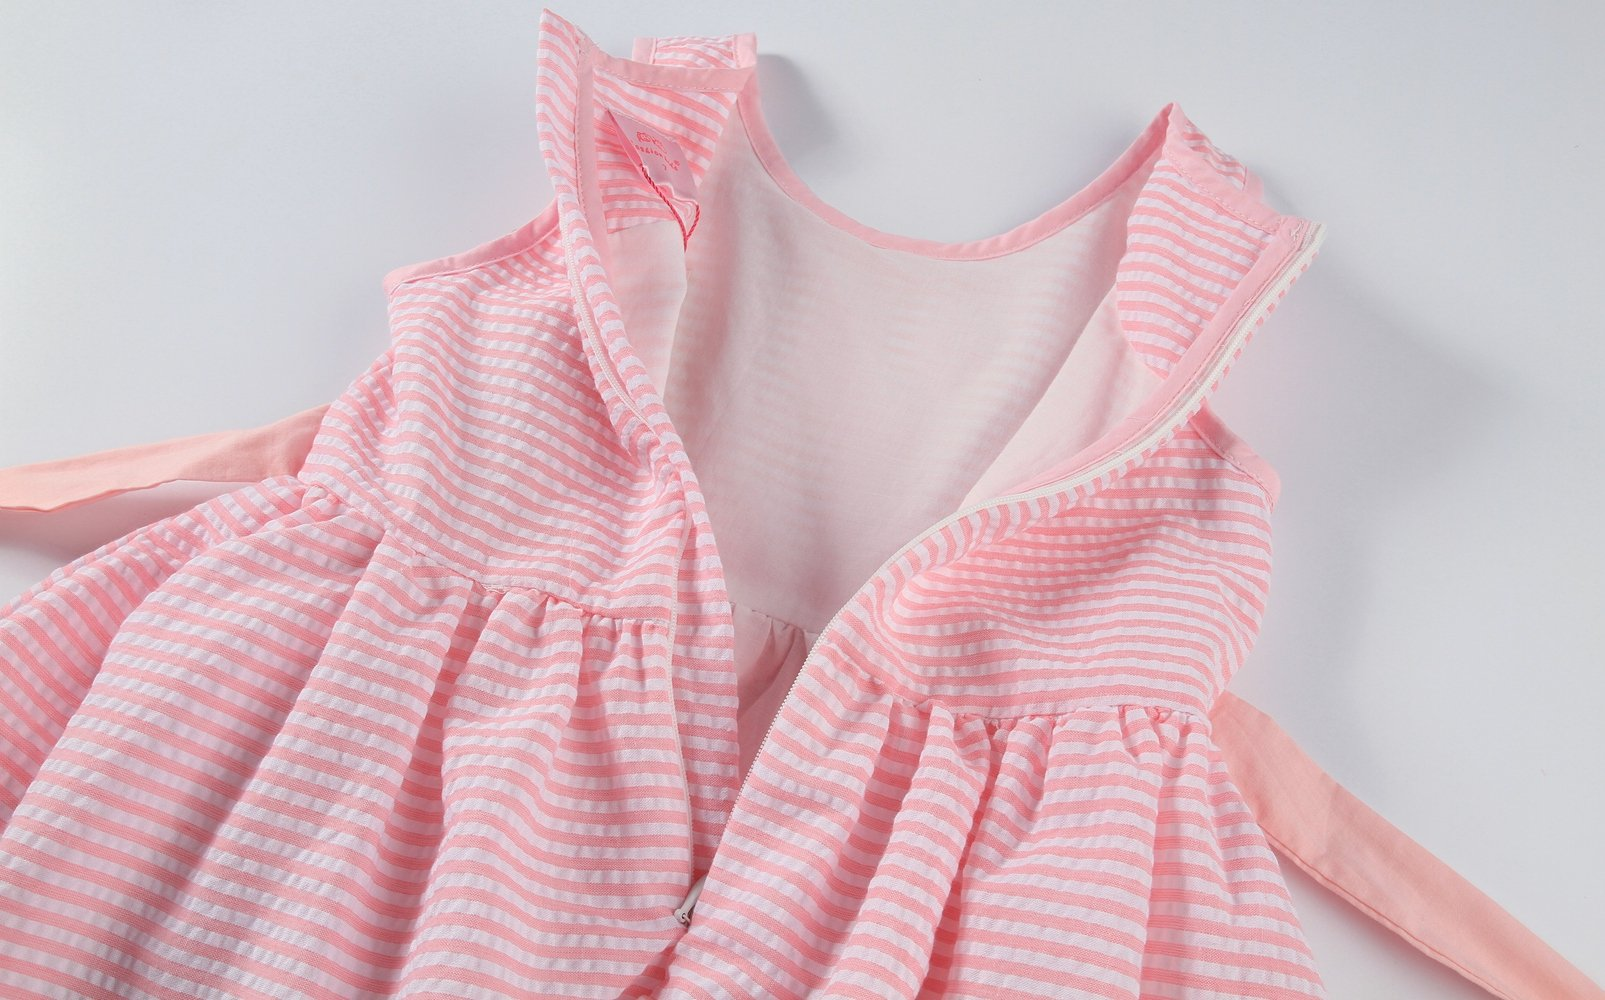 Sharequeen Striped Cotton Big Girls Summer Dress Dog Bird Cat Embroidery Pink Color A090(Pink Stripe, 6 Years) by Sharequeen (Image #7)